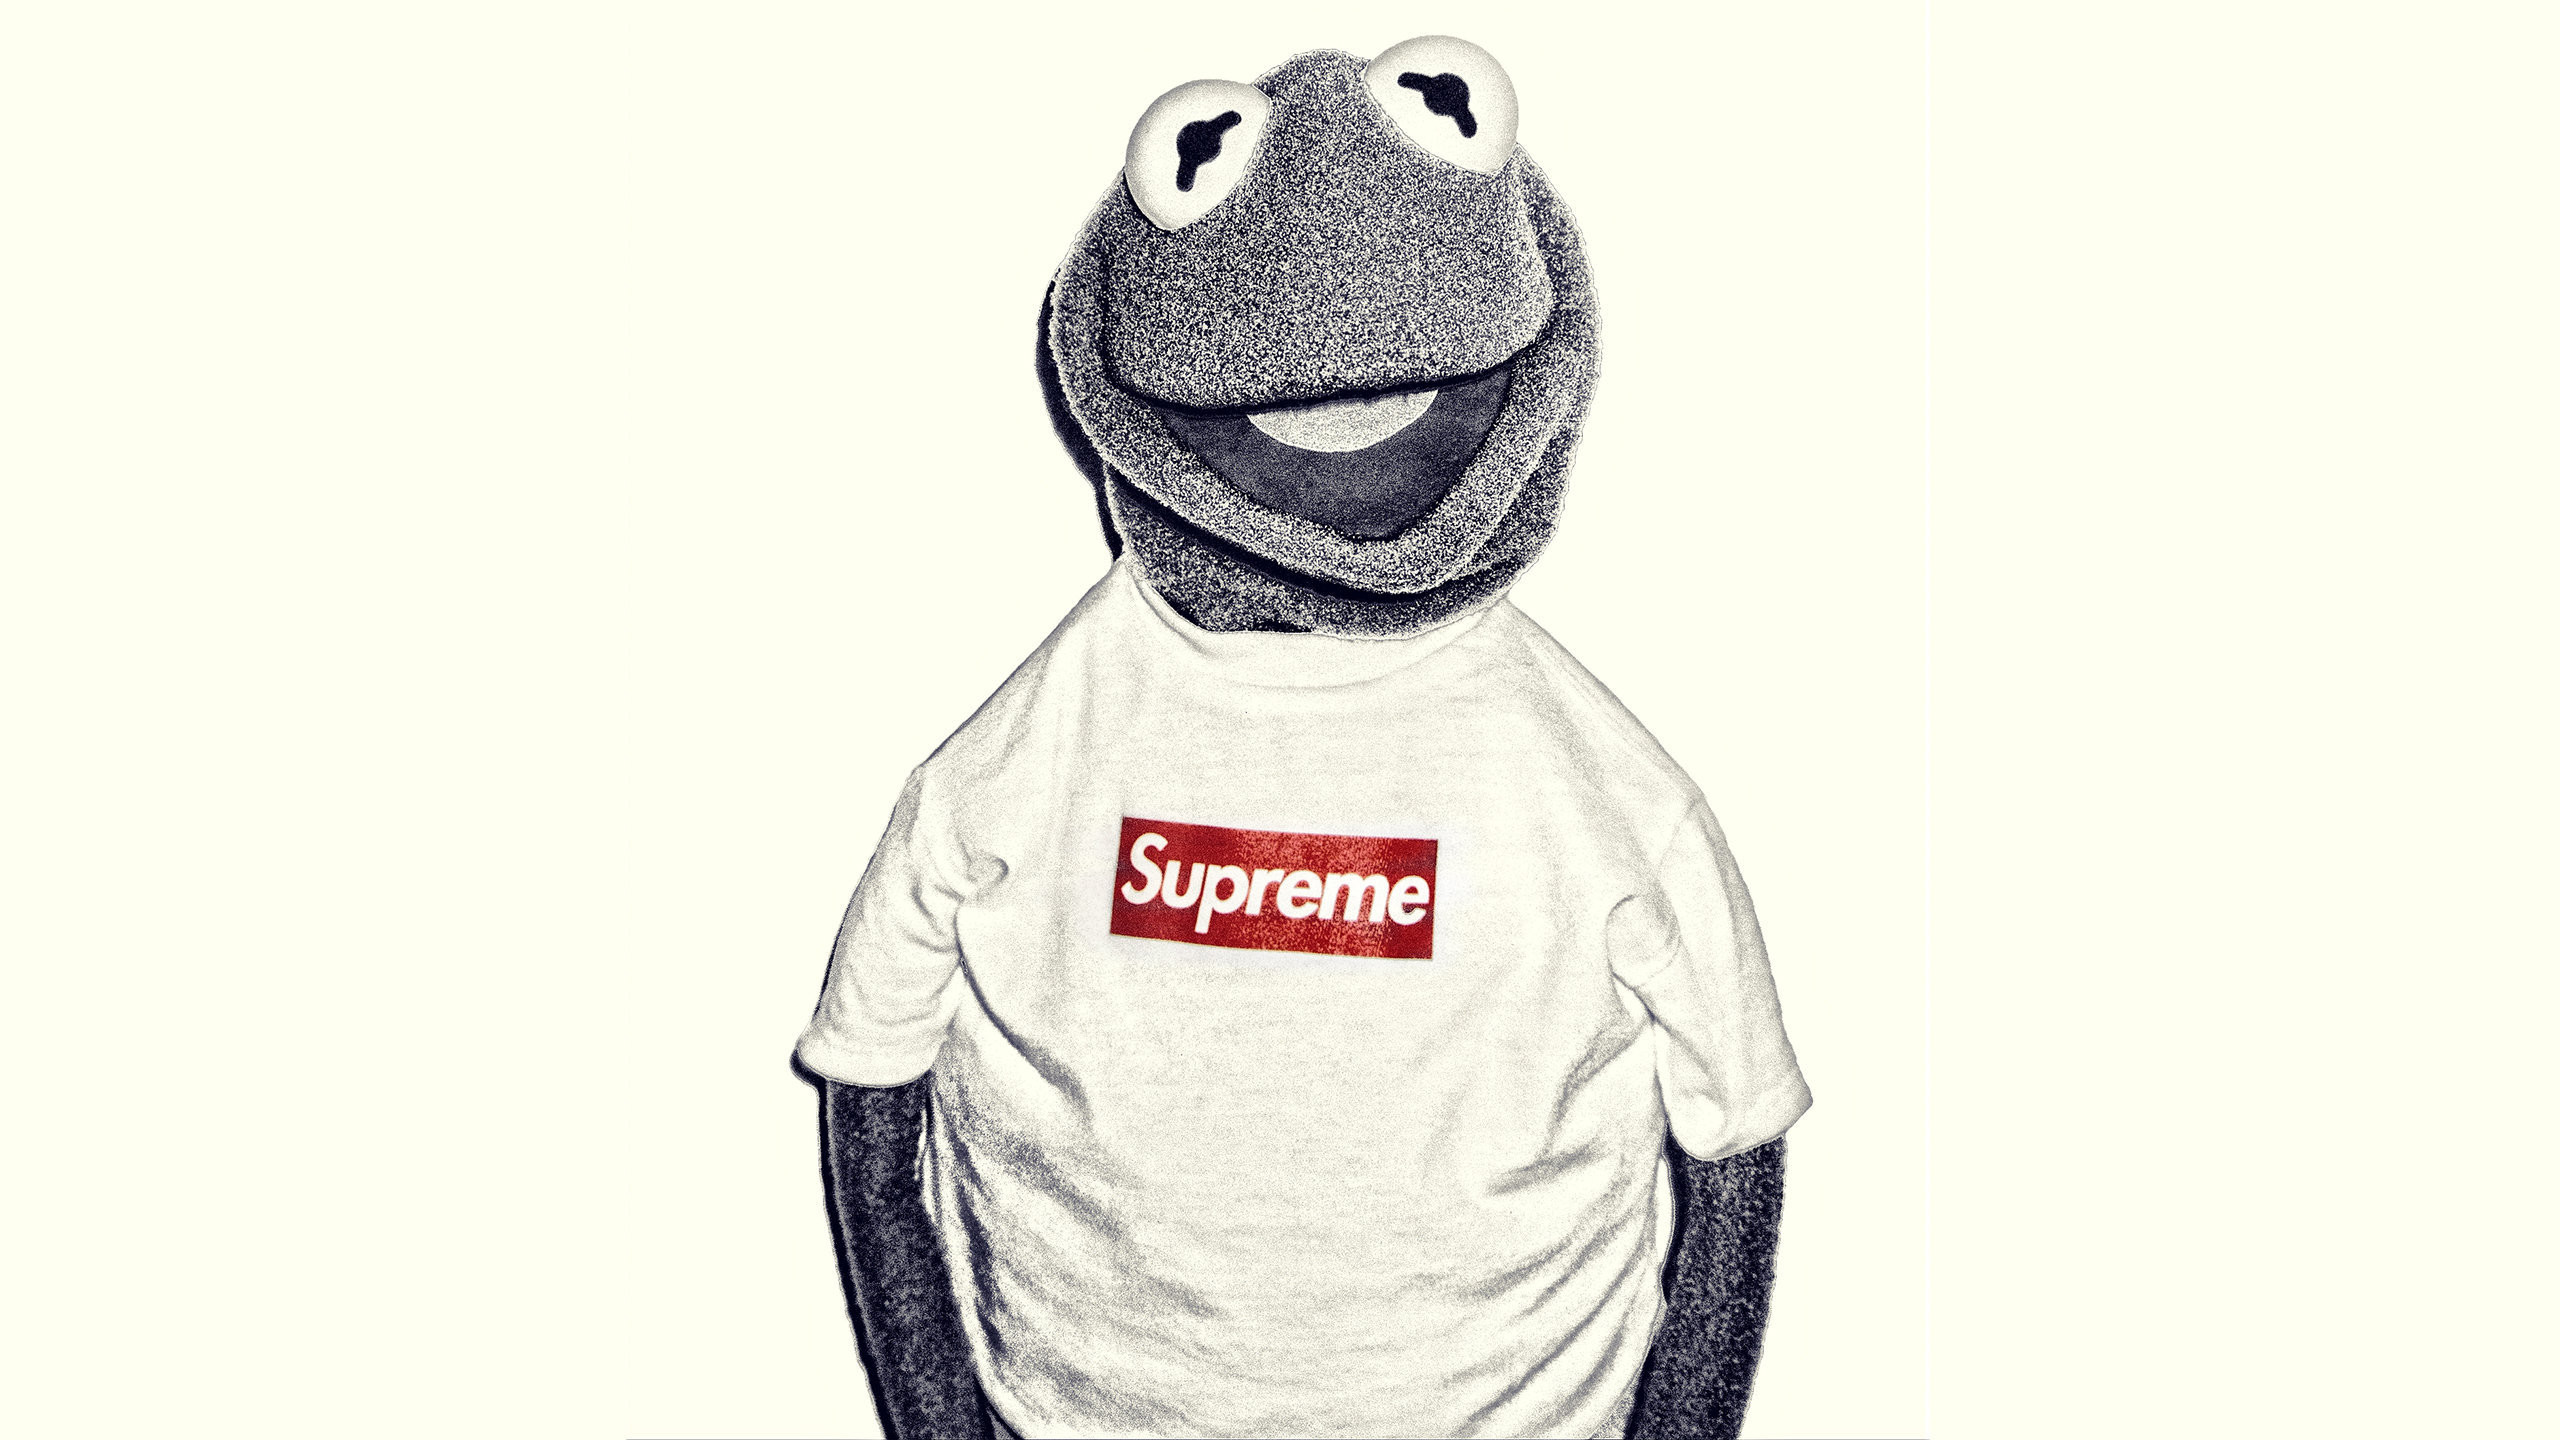 Res: 2560x1440, Download the Kermit Supreme wallpaper below for your mobile device (Android  phones, iPhone etc.)